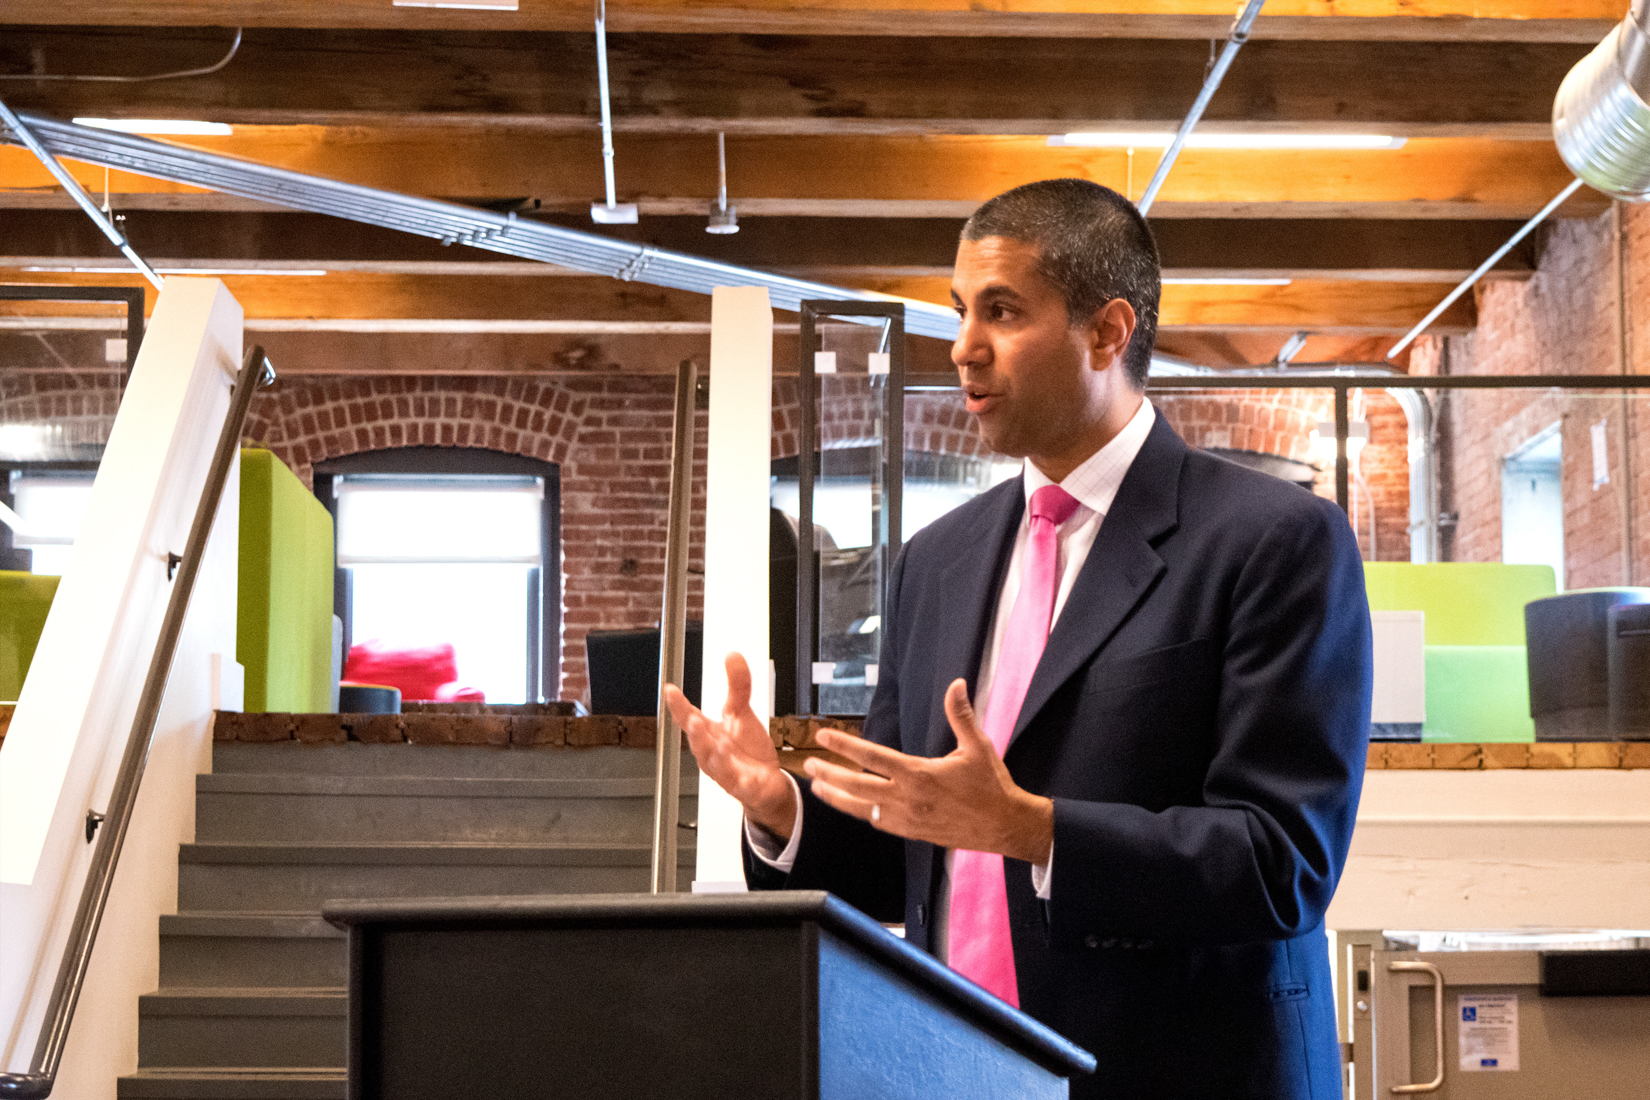 Ajit Pai Discusses his Digital Empowerment Agenda at Think Big